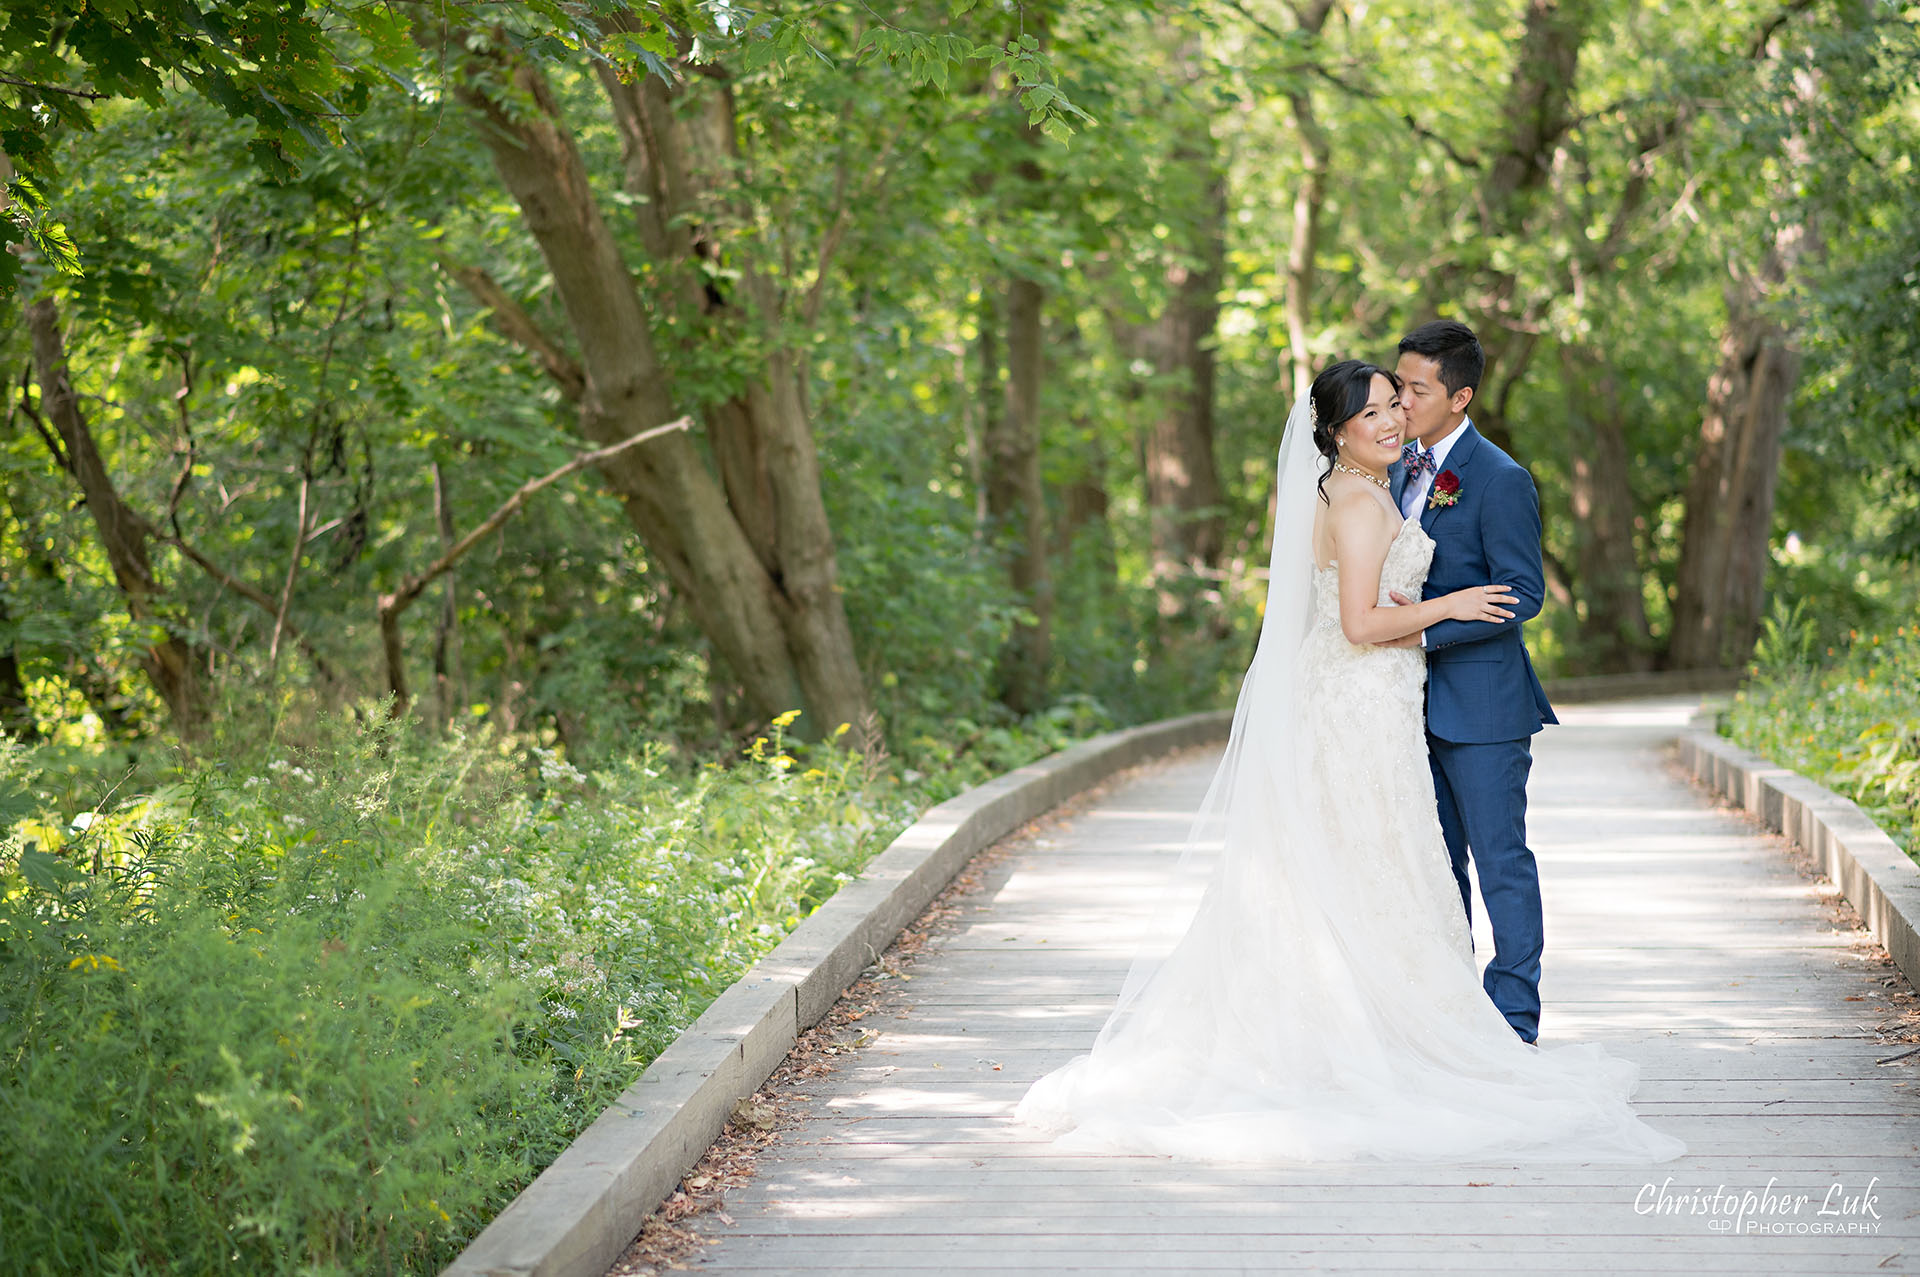 Christopher Luk Toronto Wedding Photographer Bridle Trail Baptist Church Unionville Main Street Crystal Fountain Event Venue Bride Groom Natural Photojournalistic Candid Creative Portrait Session Pictures Forest Trail Walkway Boardwalk Hug Kiss Landscape